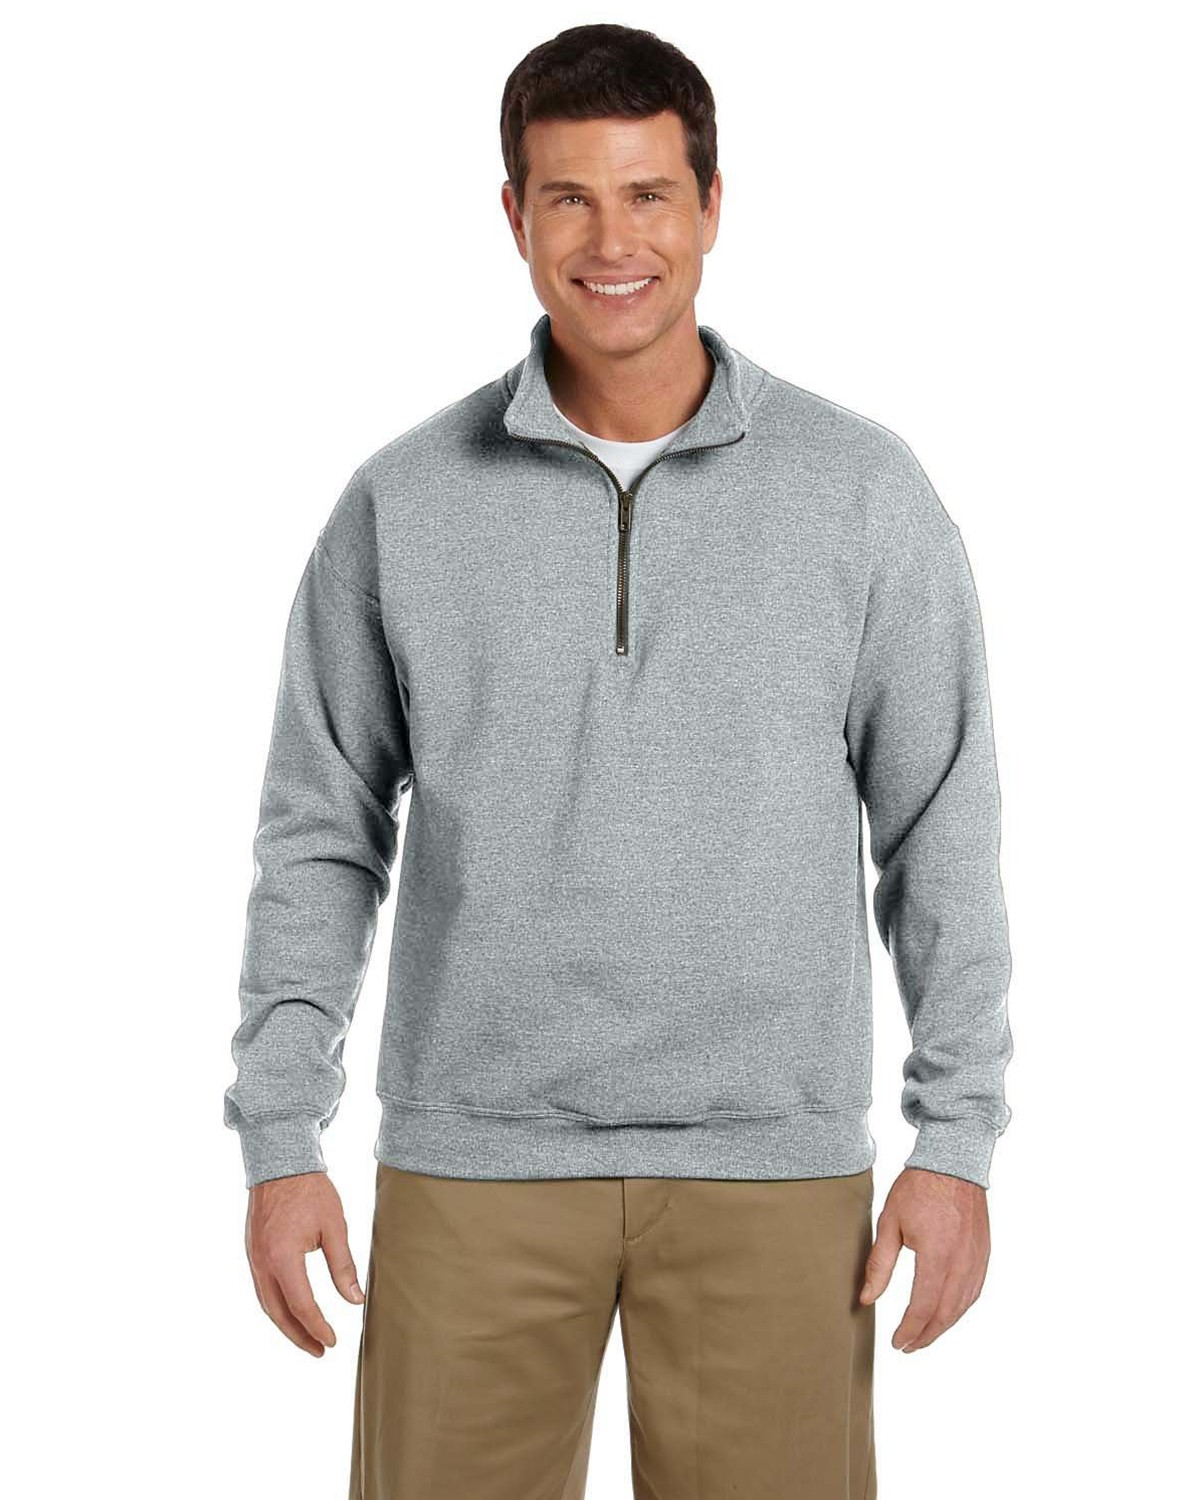 Gildan G188 Heavy Blend Vintage Cadet Collar Sweatshirt - Sport Grey - XL G188